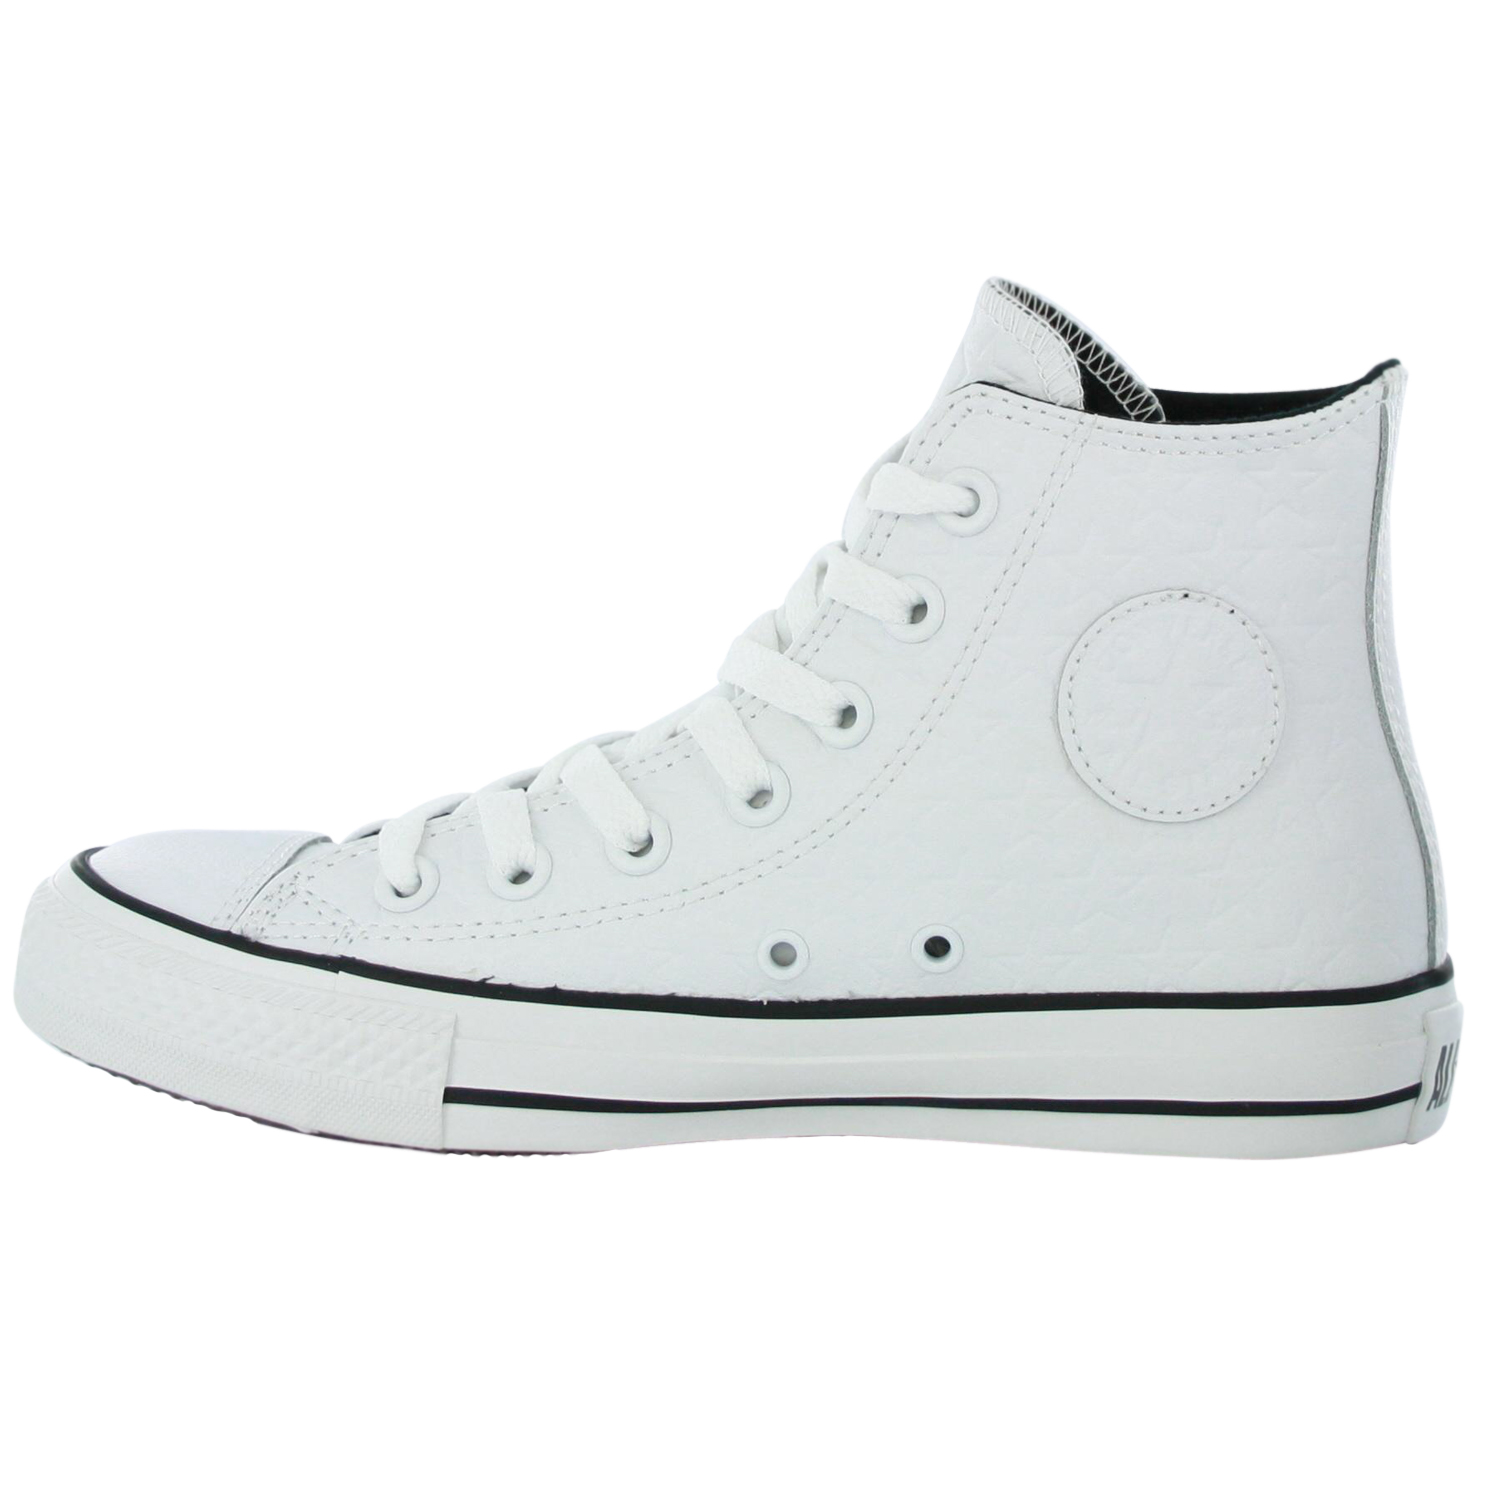 converse all repeat hi white leather mens shoes ebay